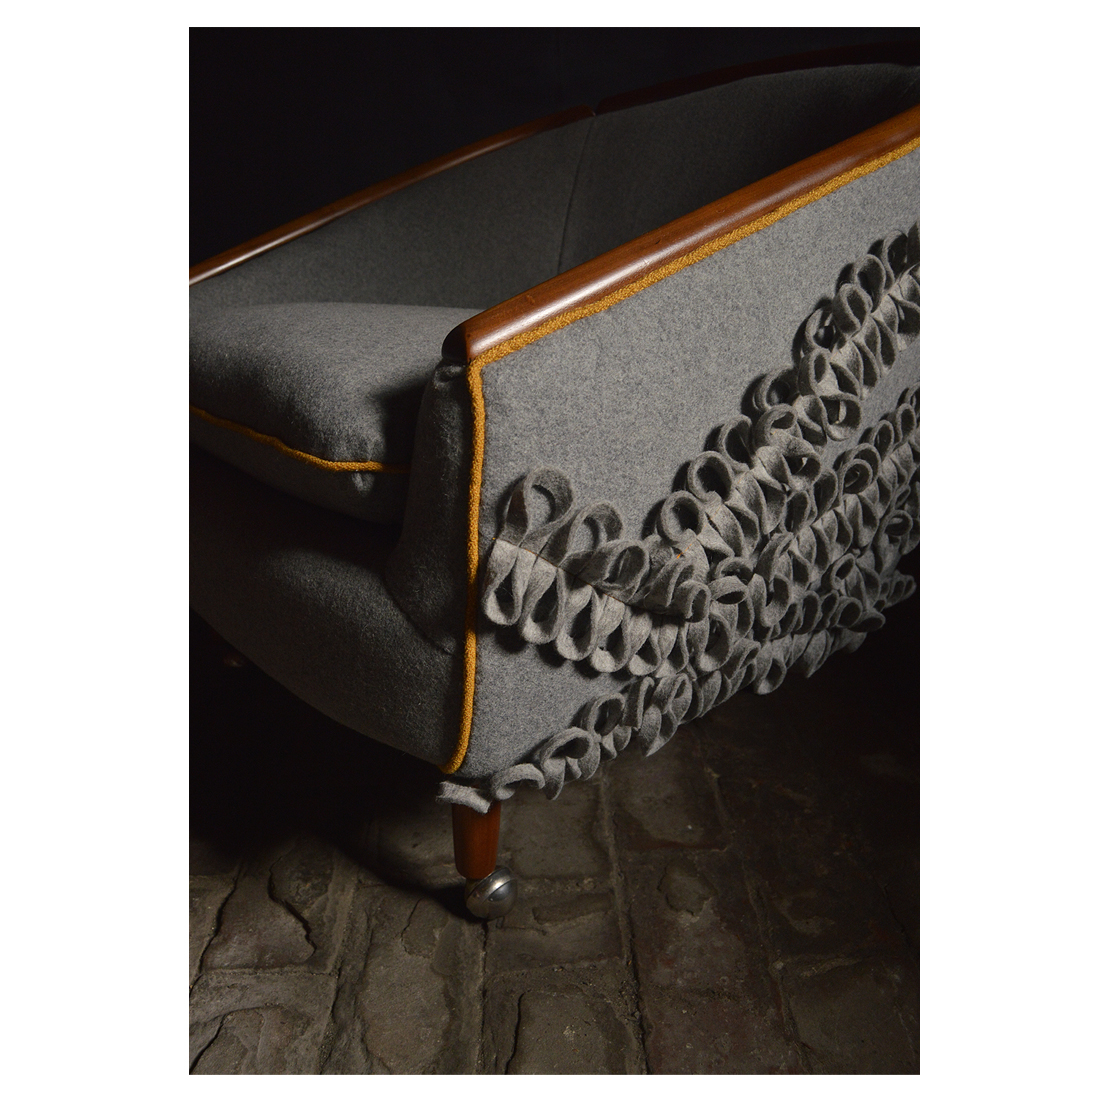 The edges are piped in a luxurious Bute fabric which compliments the thread used to attach the felt washers.